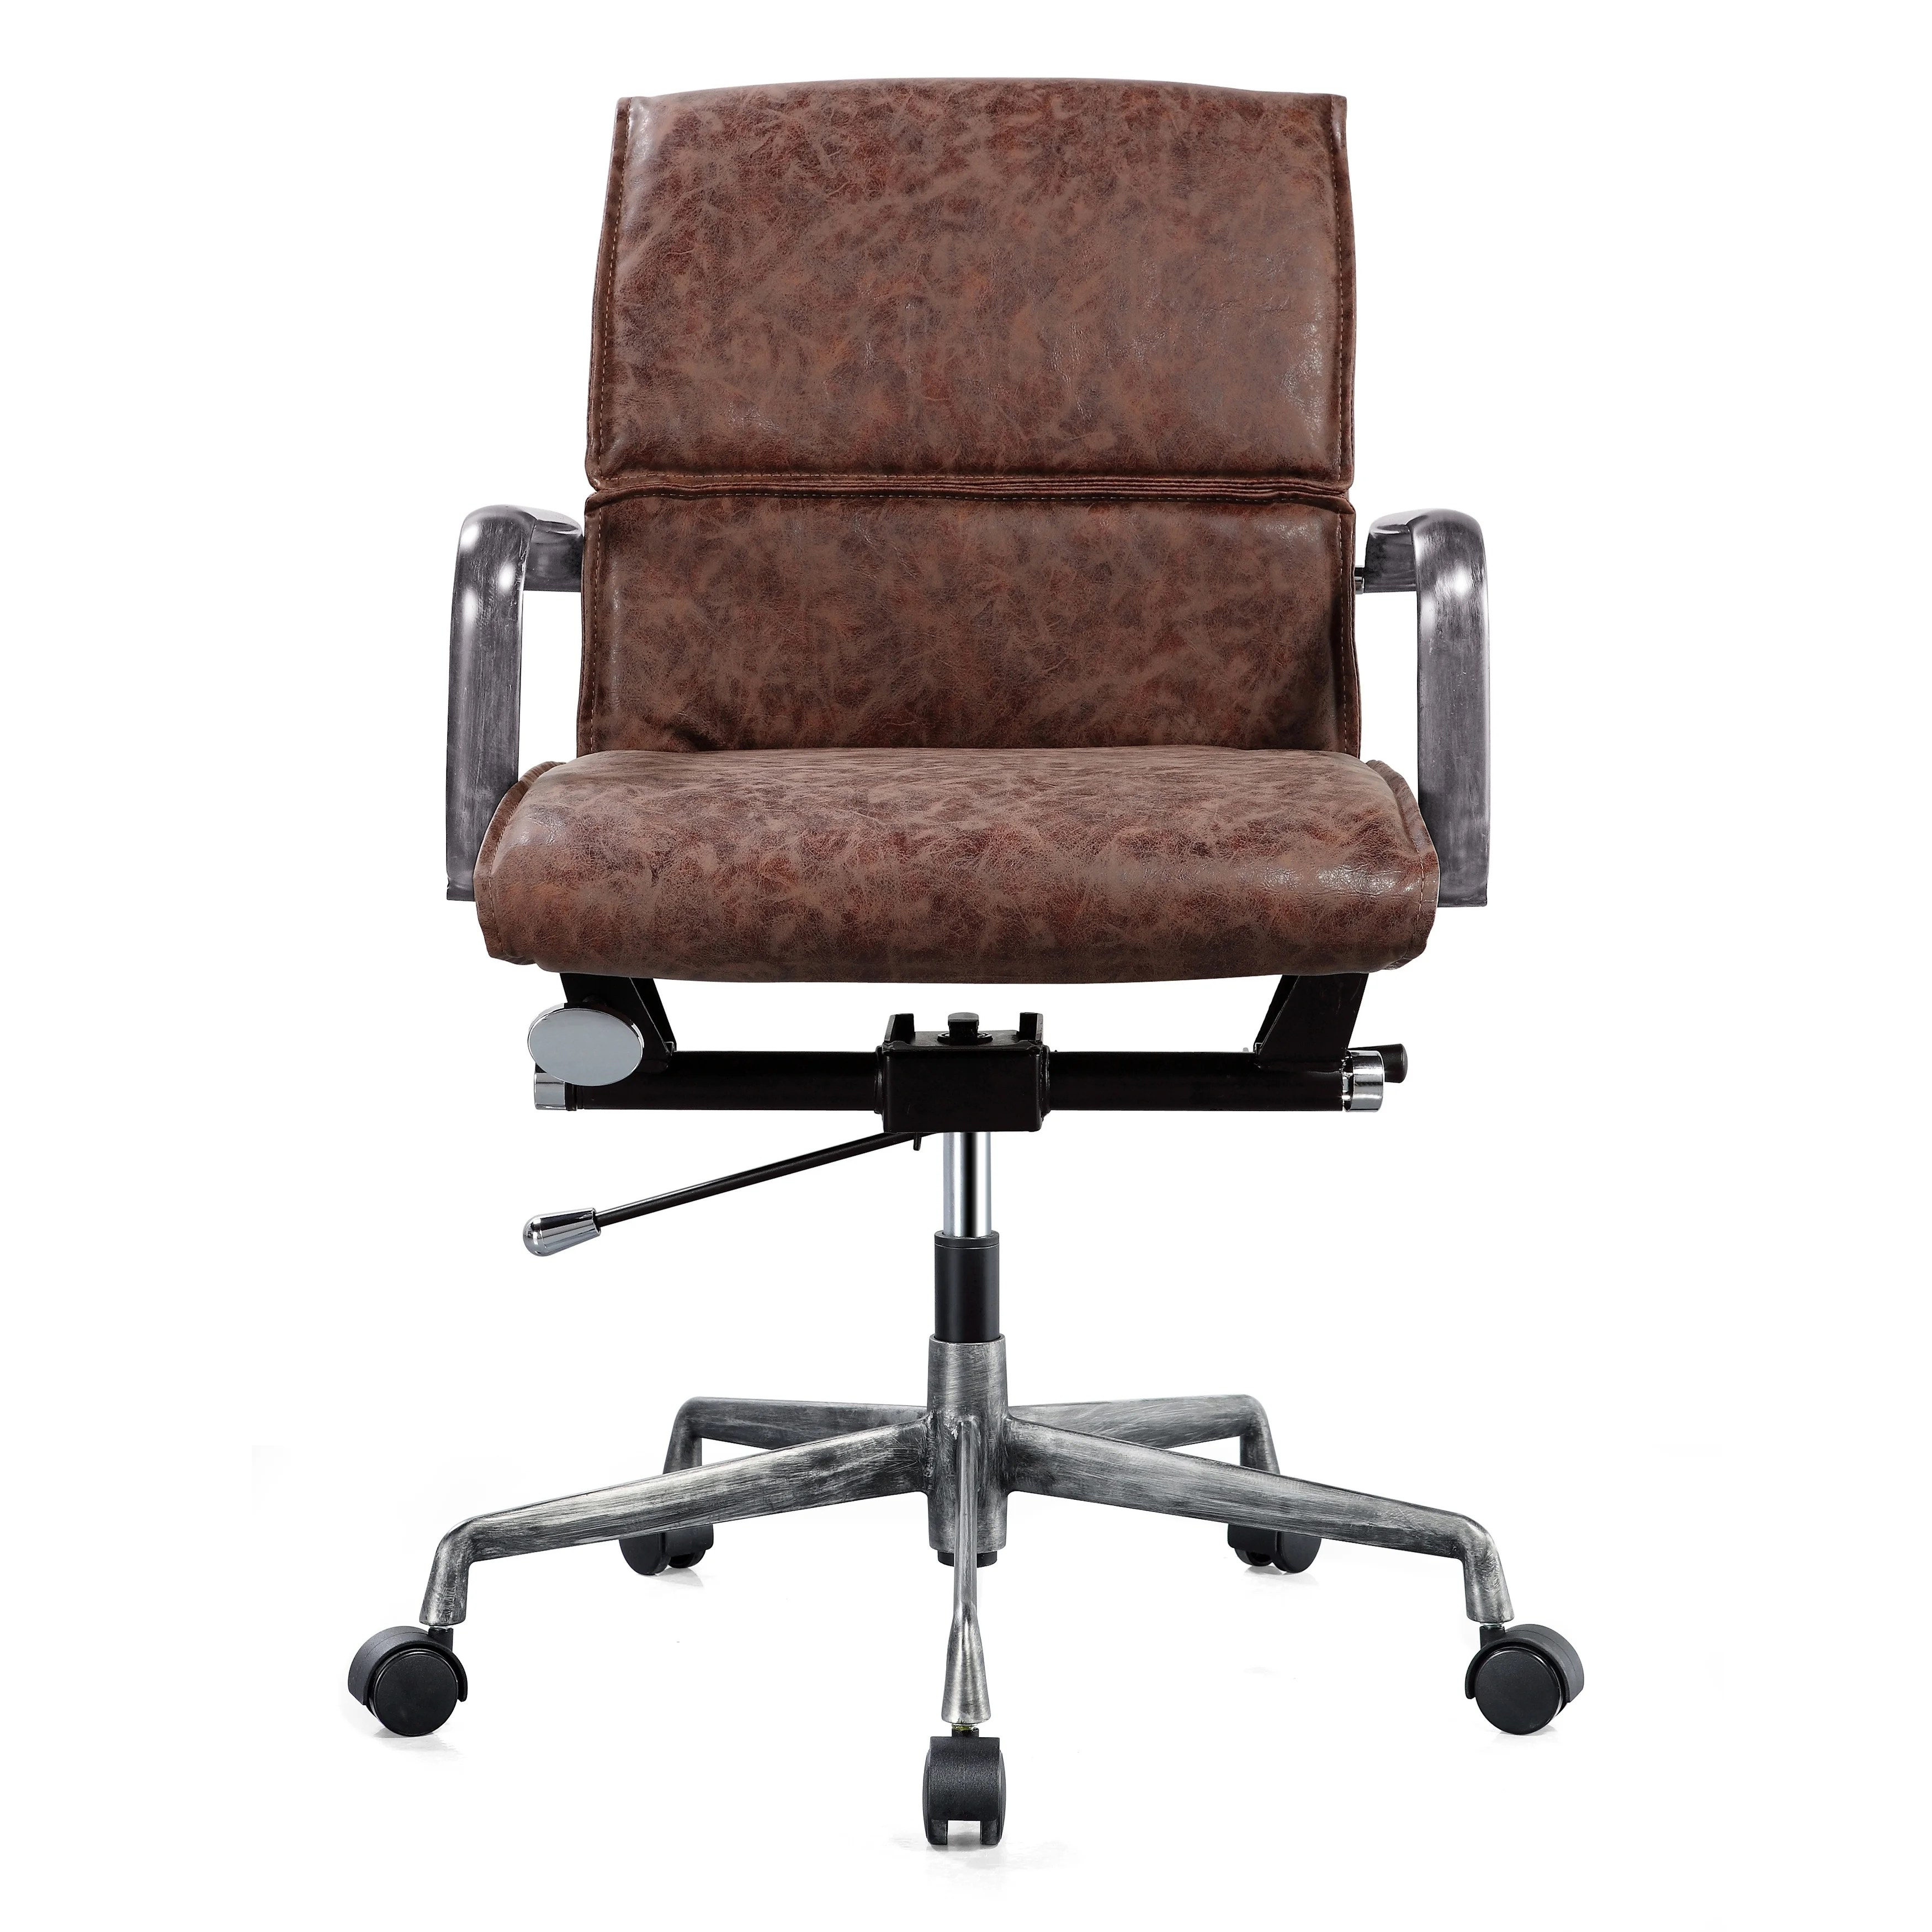 distressed leather desk chair cheap deck chairs shop m330 padded vegan office on sale free shipping today overstock com 22700428